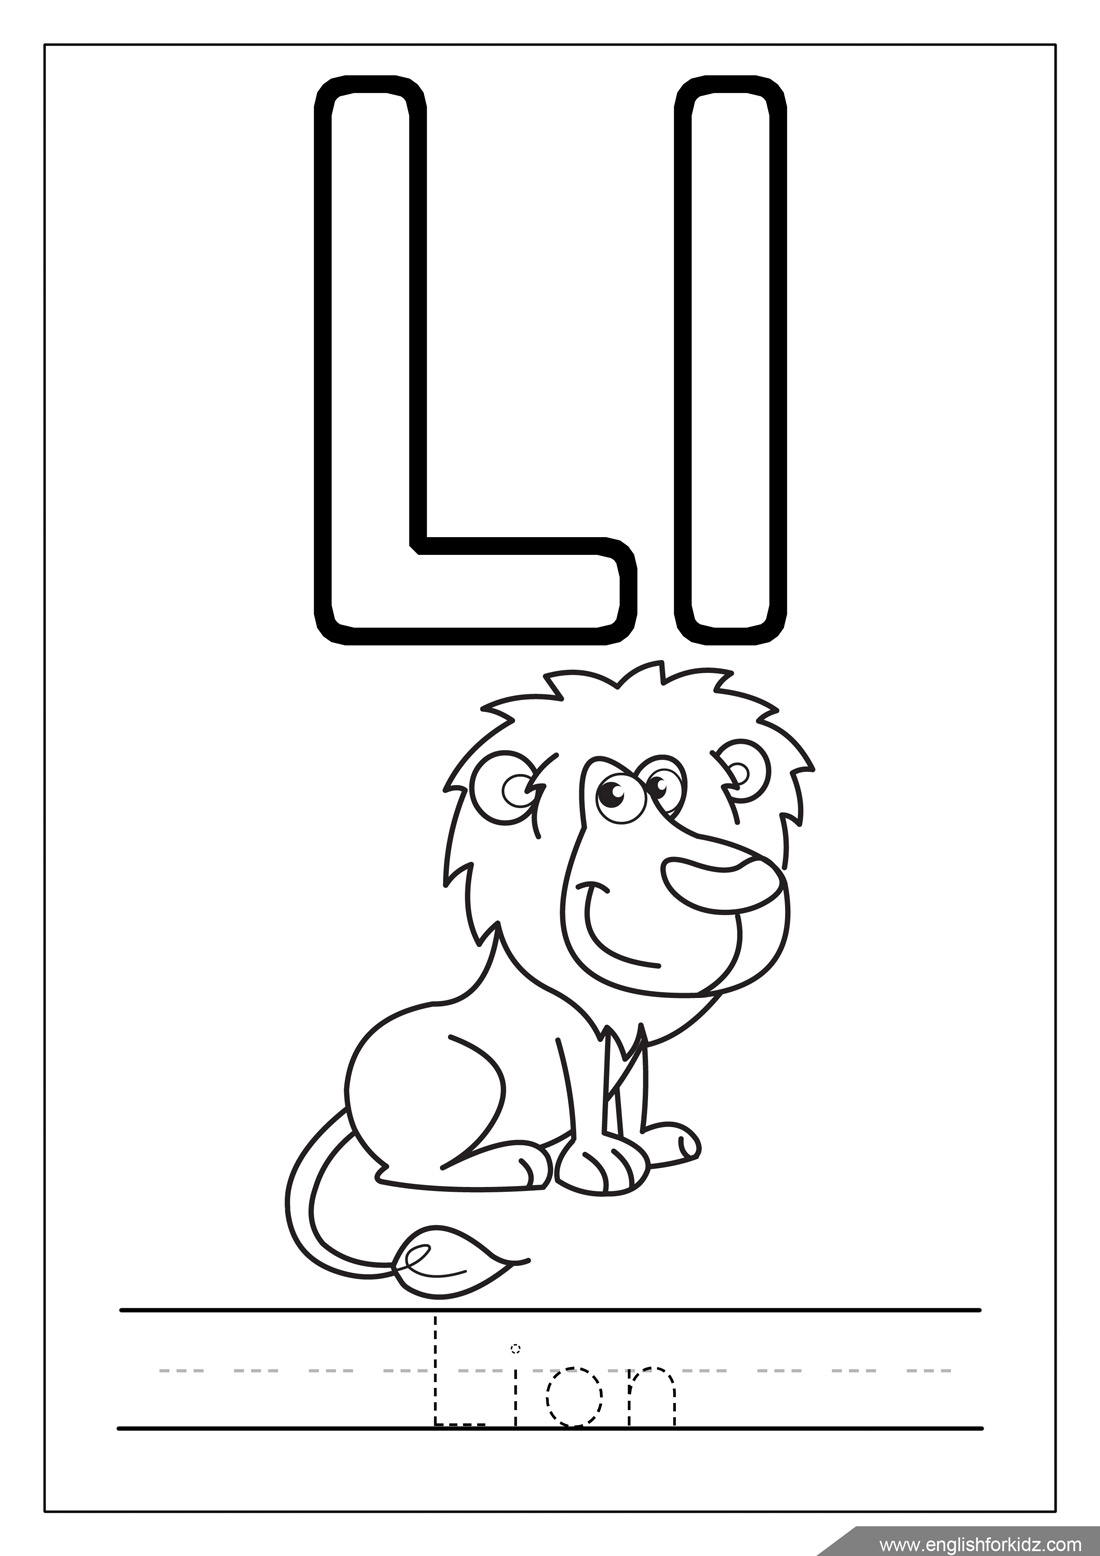 English For Kids Step By Step Alphabet Coloring Pages Letters K